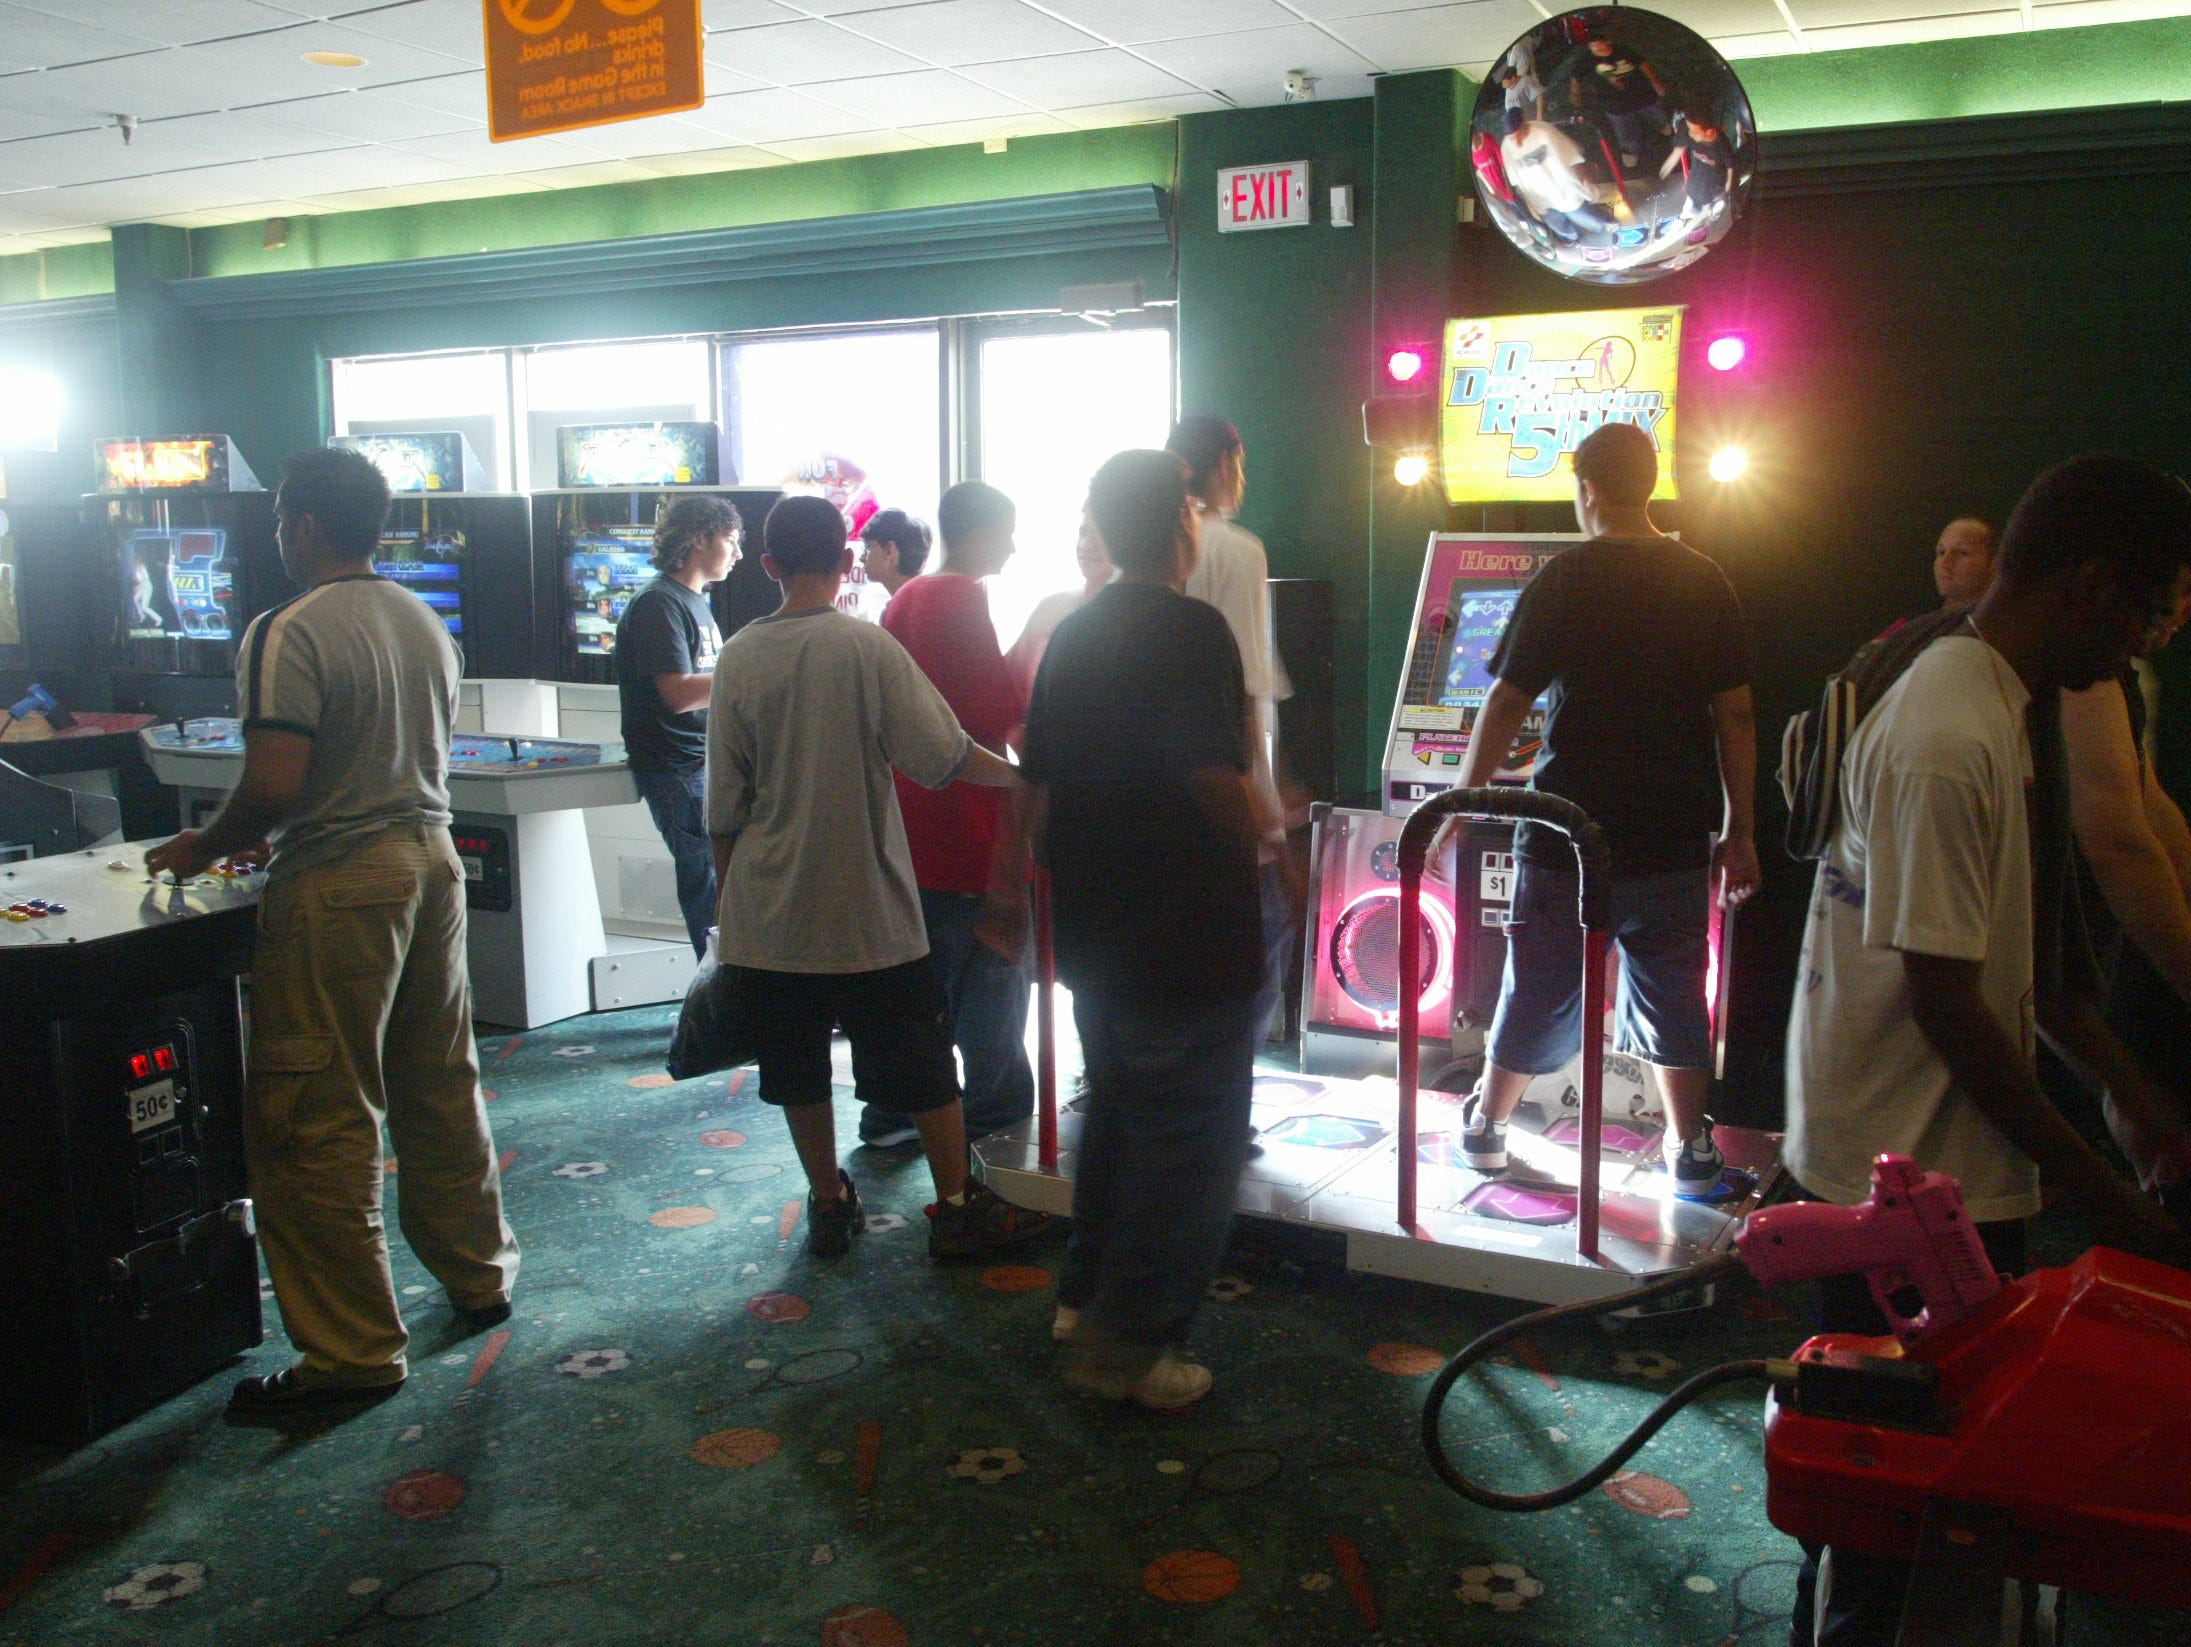 Players congregate around a Dance Dance Revolution machine at Fun N Games arcade in Wayne.